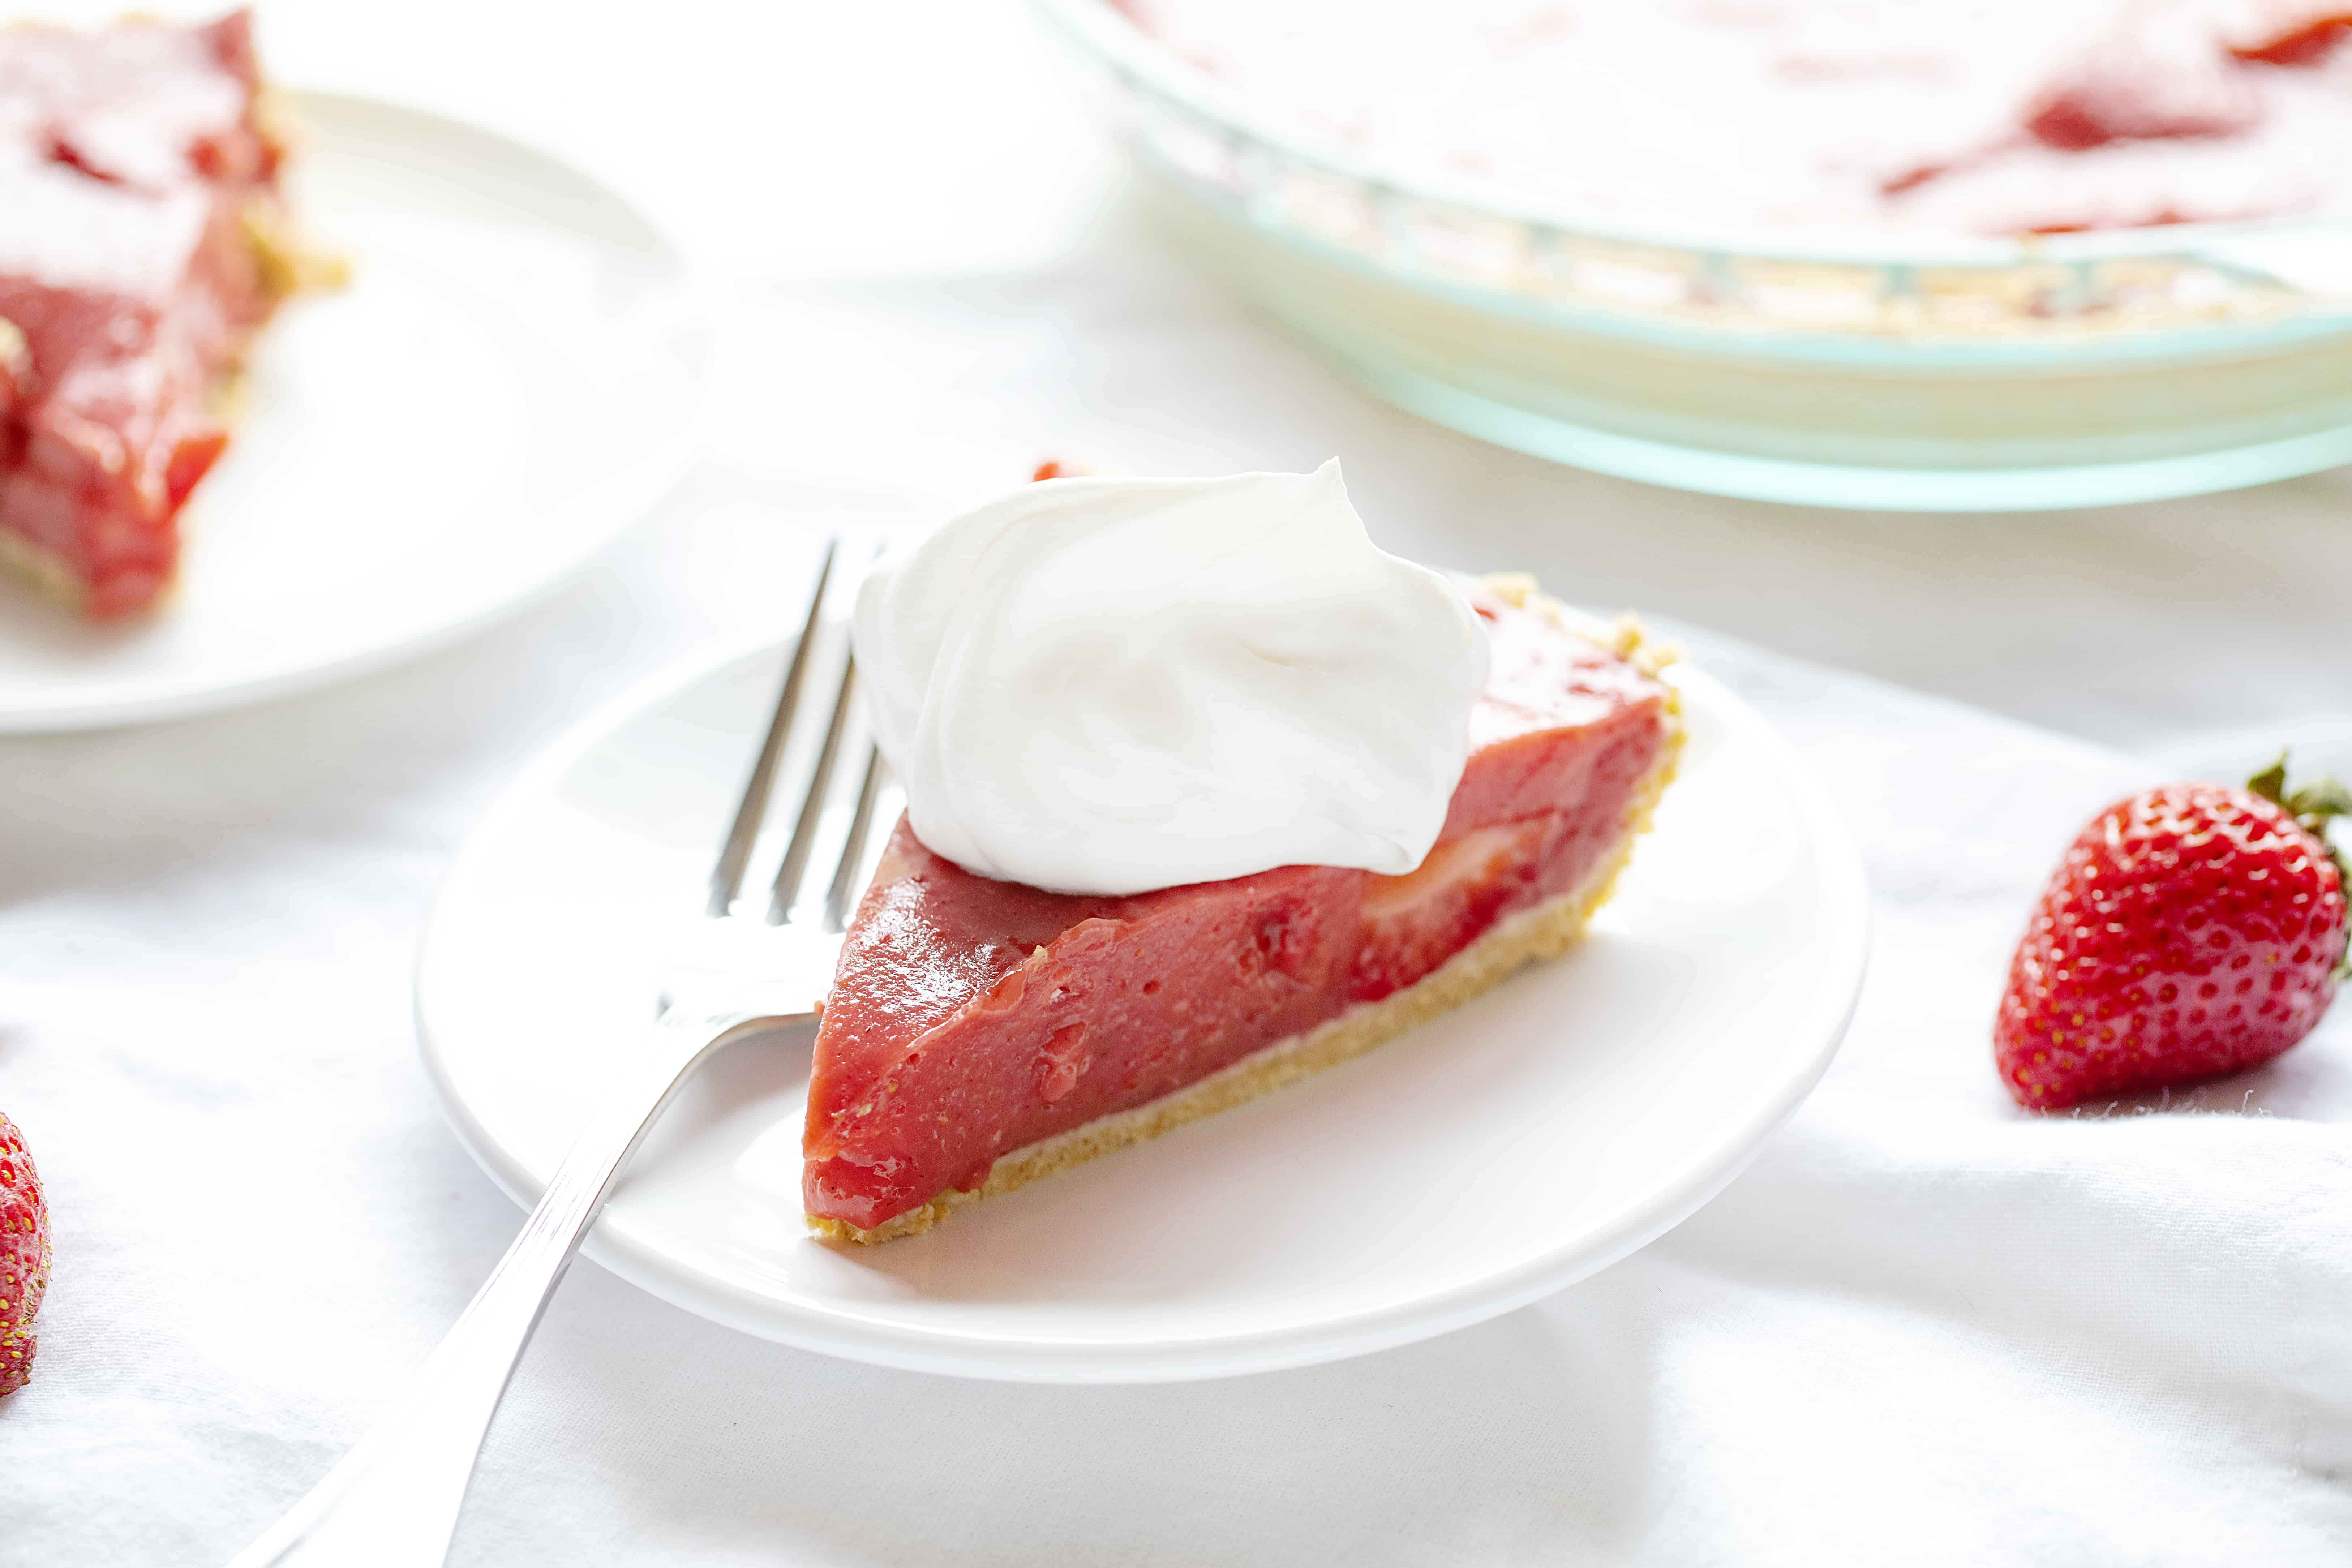 https://iambaker.net/wp-content/uploads/2019/07/straw-pie-2.jpg